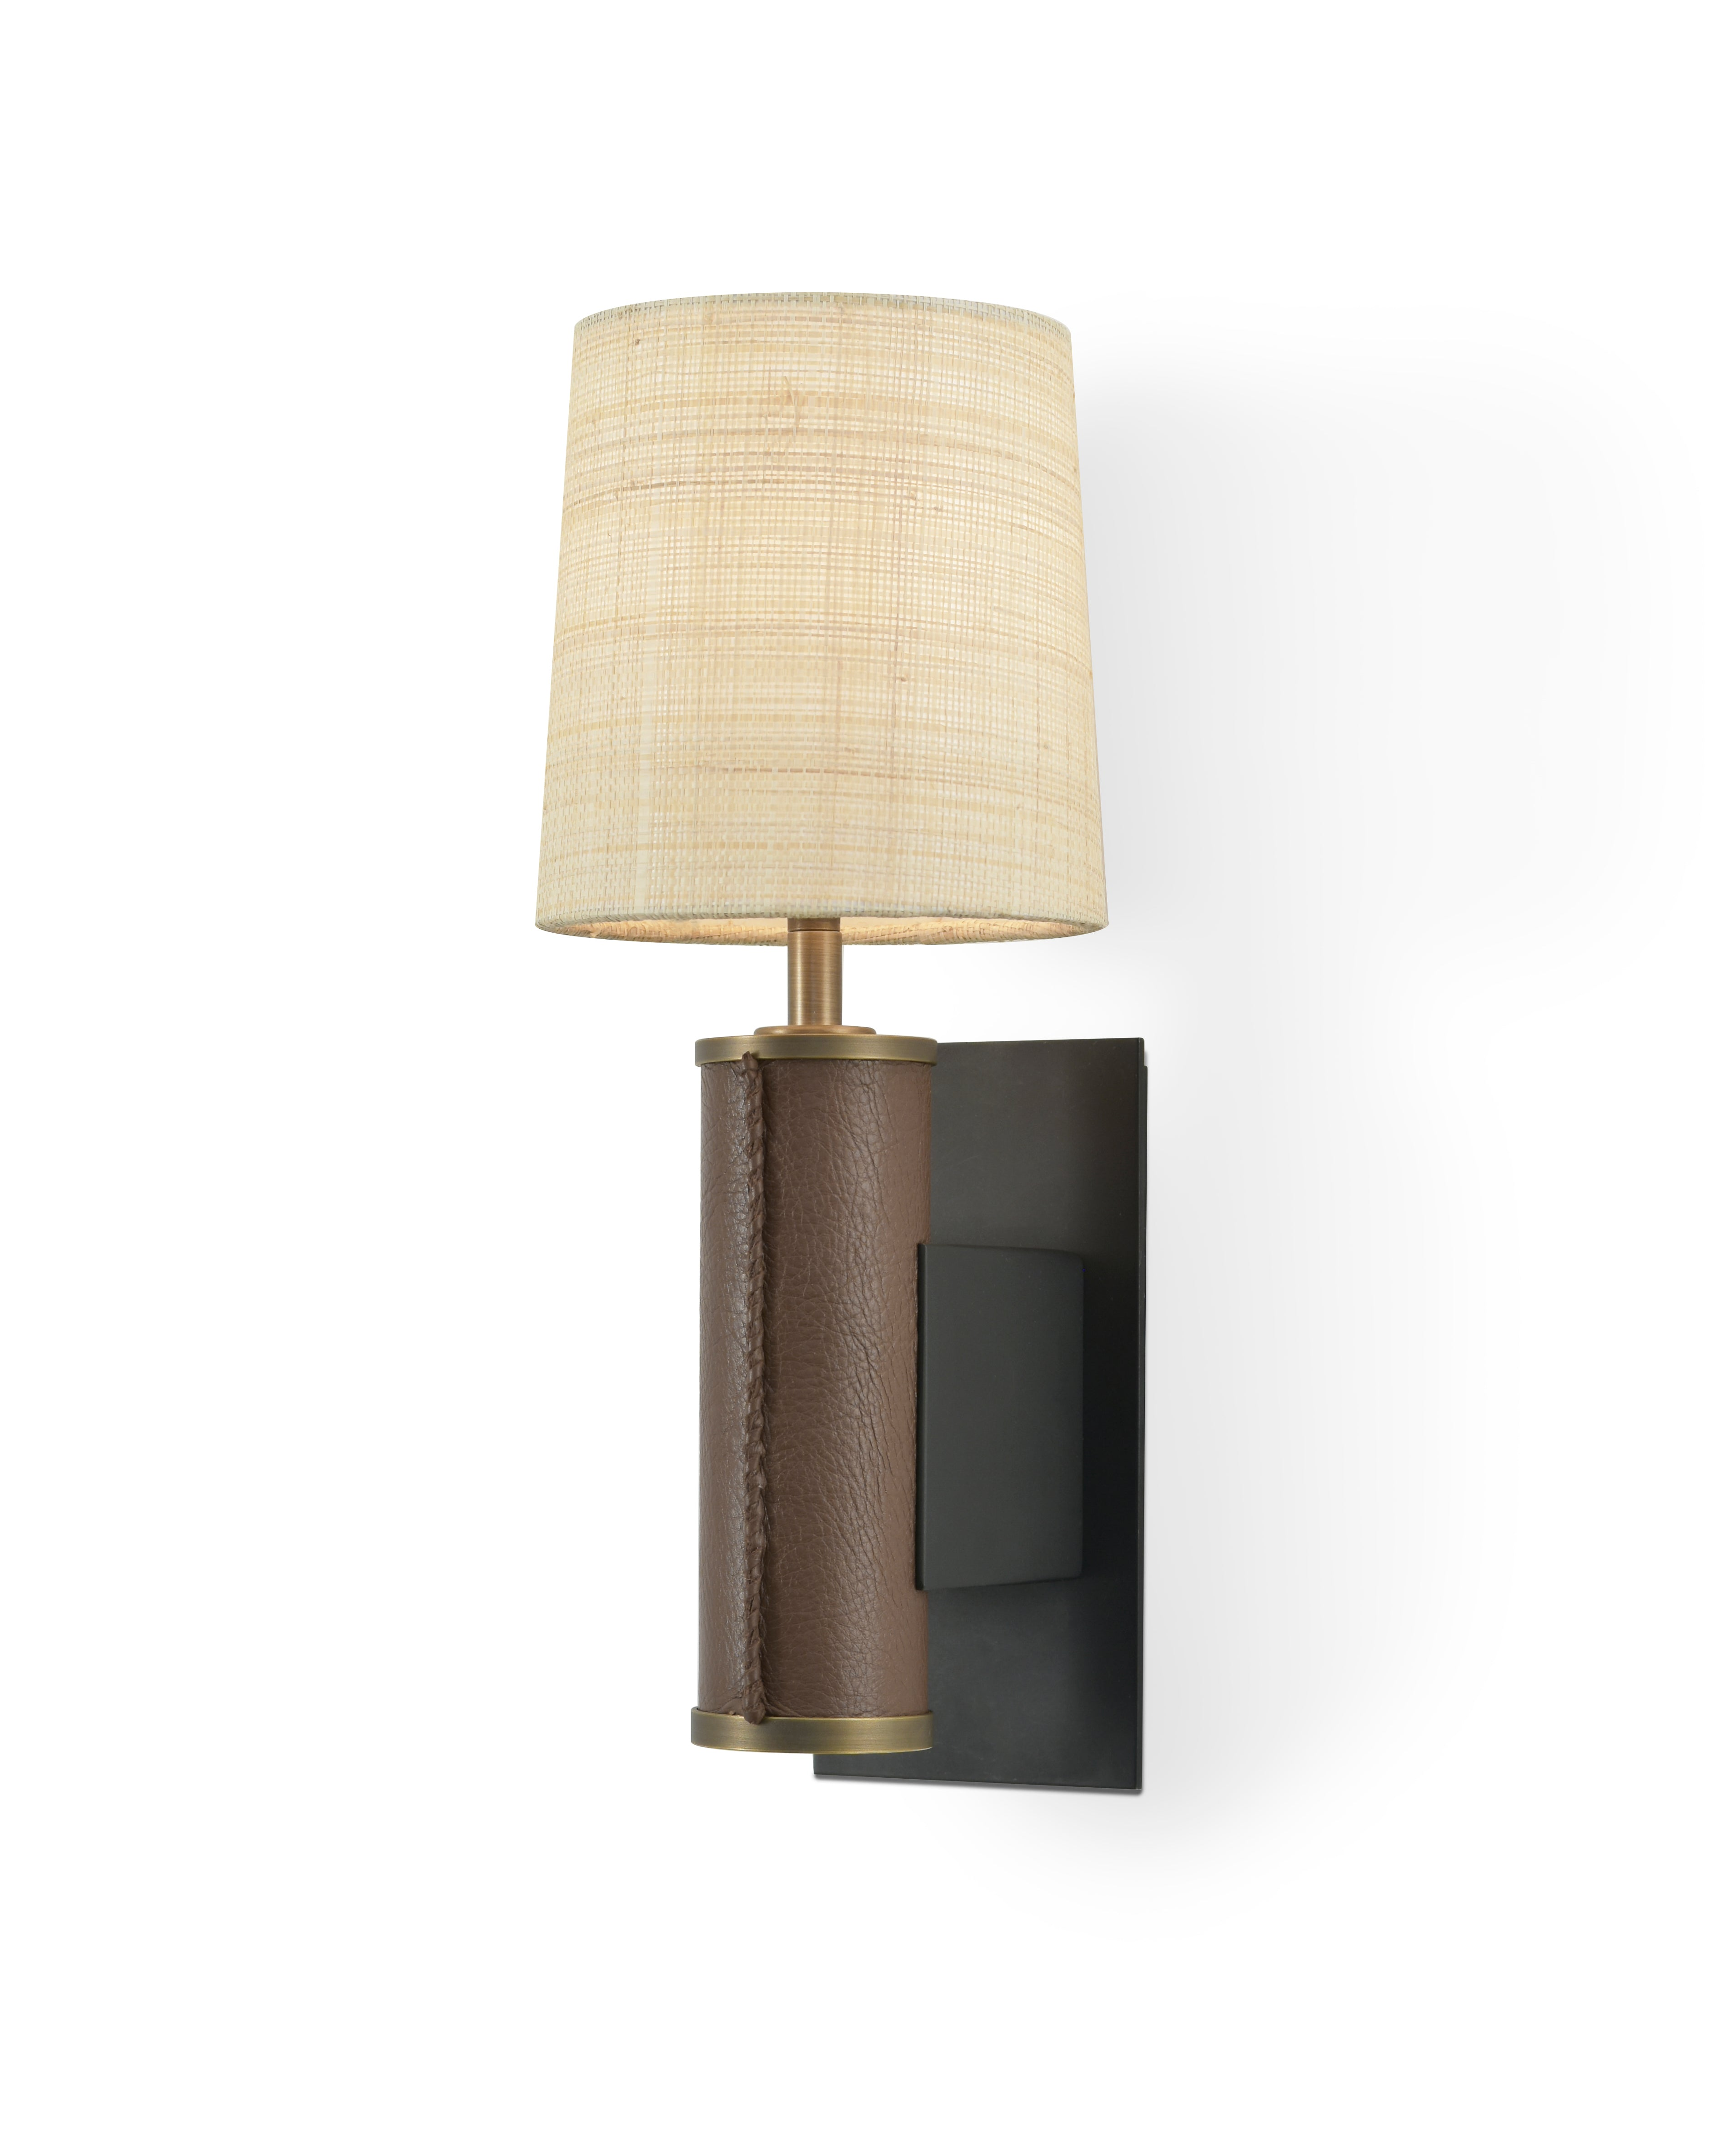 Patinated Steel and Light Antique Brass with Brown Leather and Raffia Shade